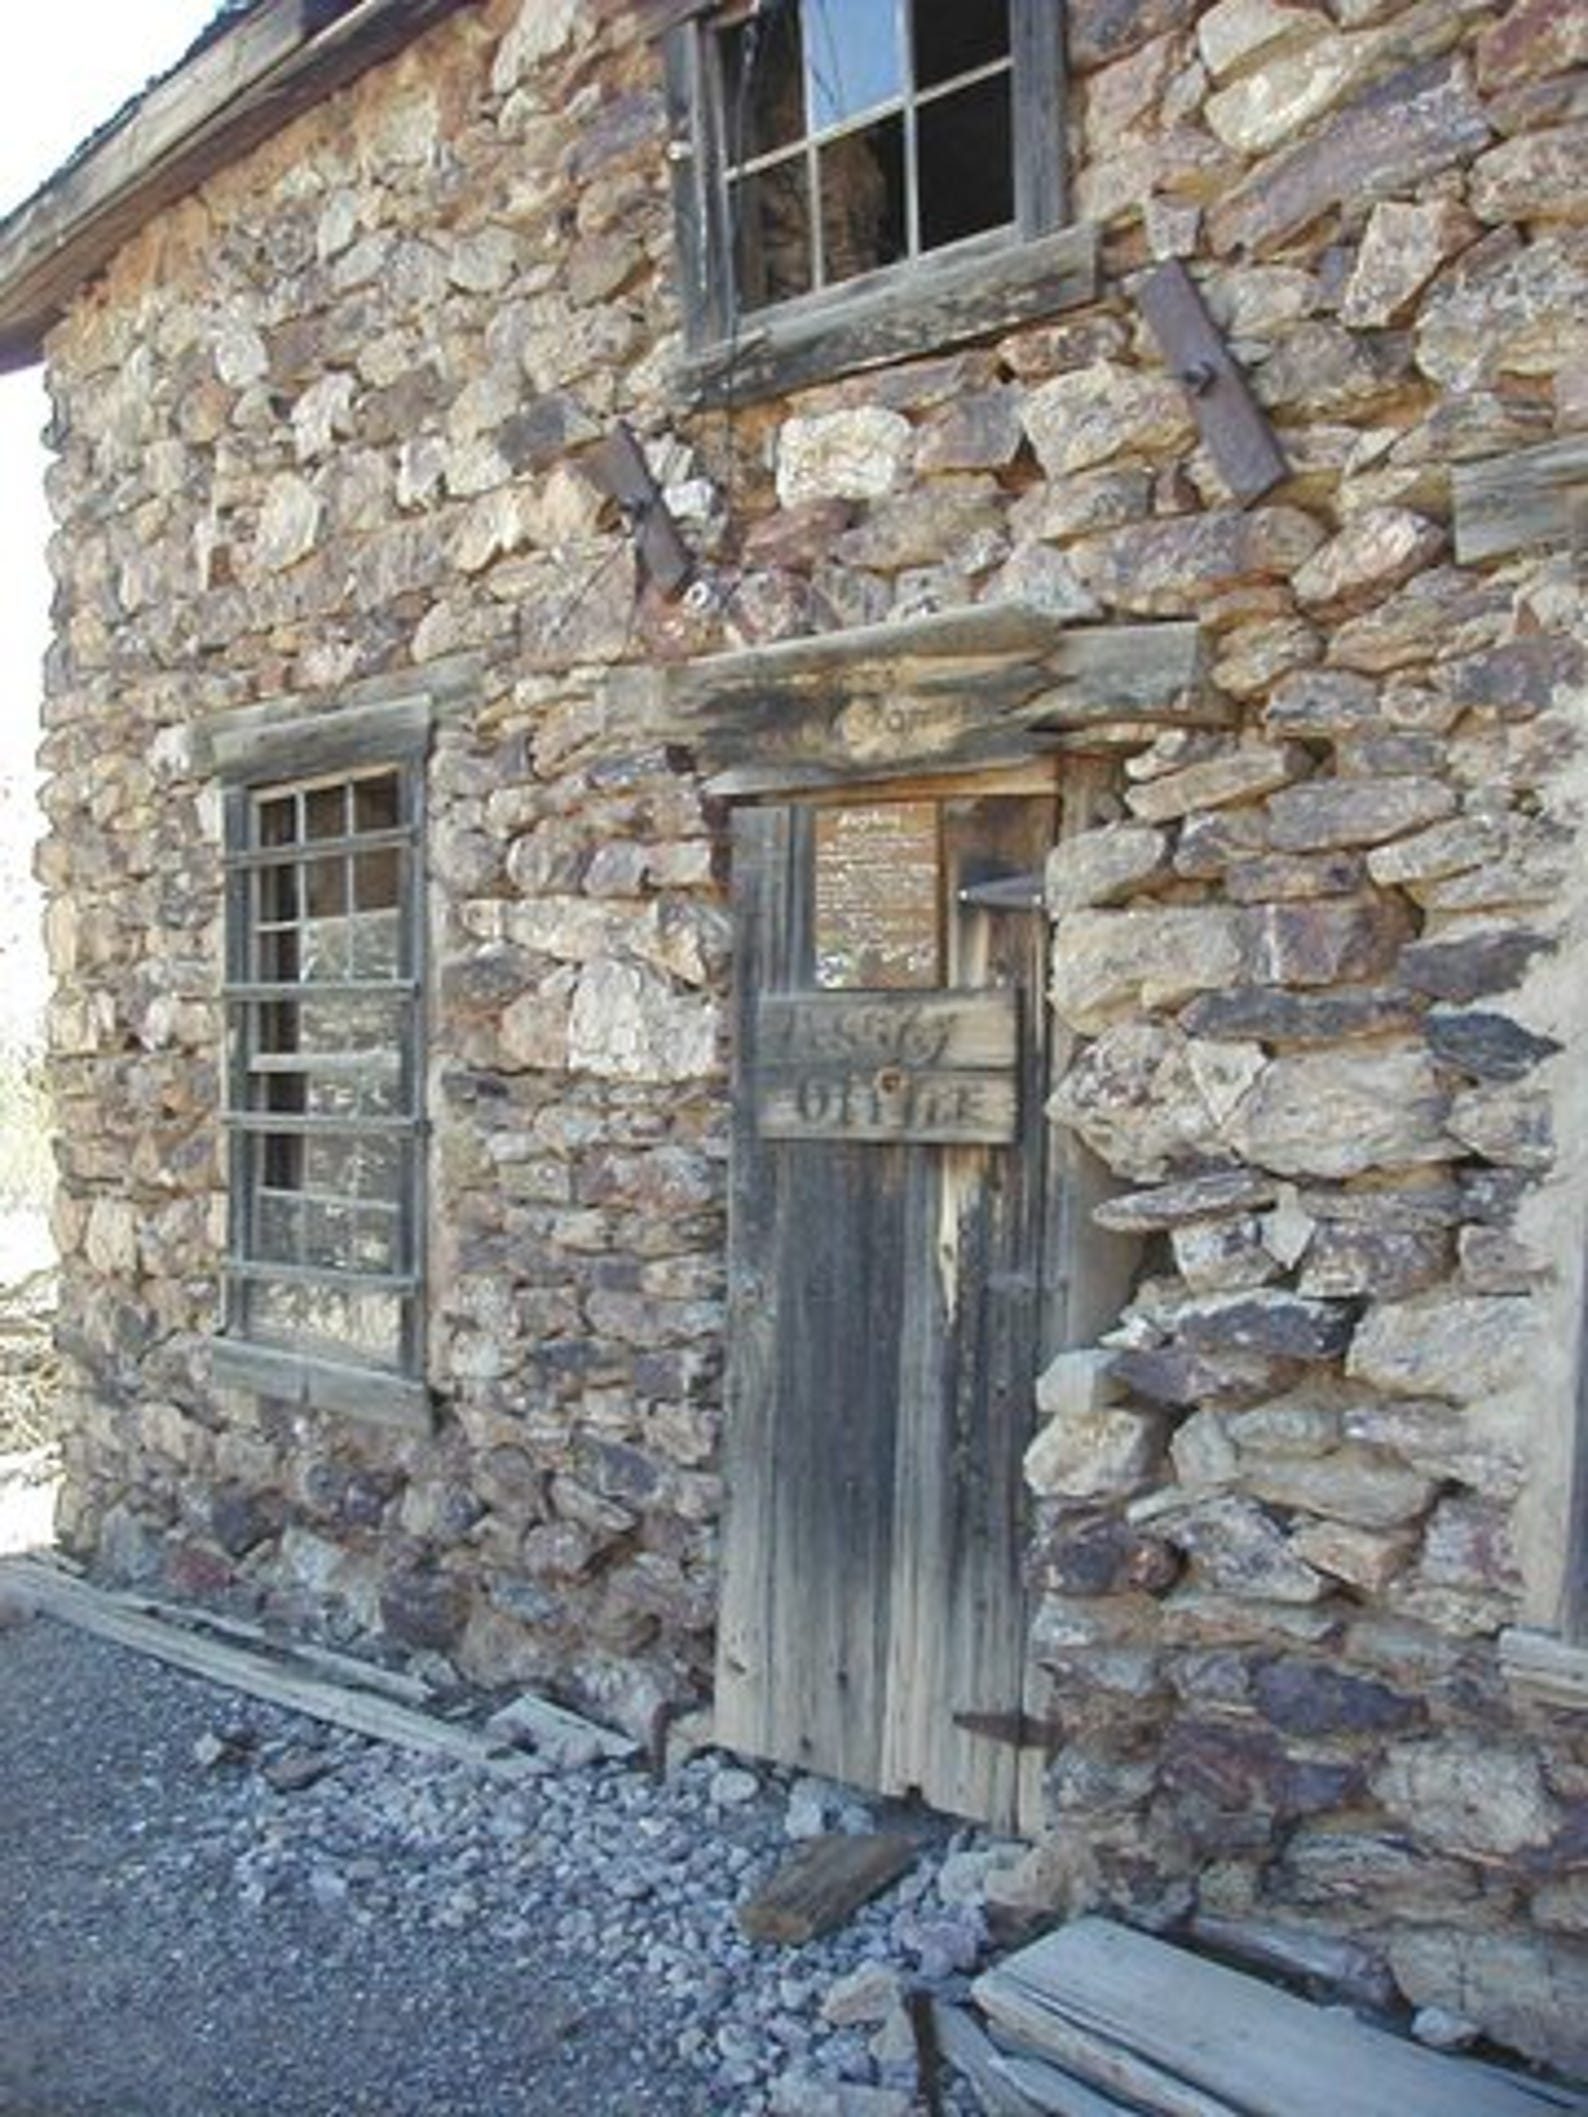 The assay building near the Vulture Mine in Wickenburg may be home to spirits still waiting for gold.